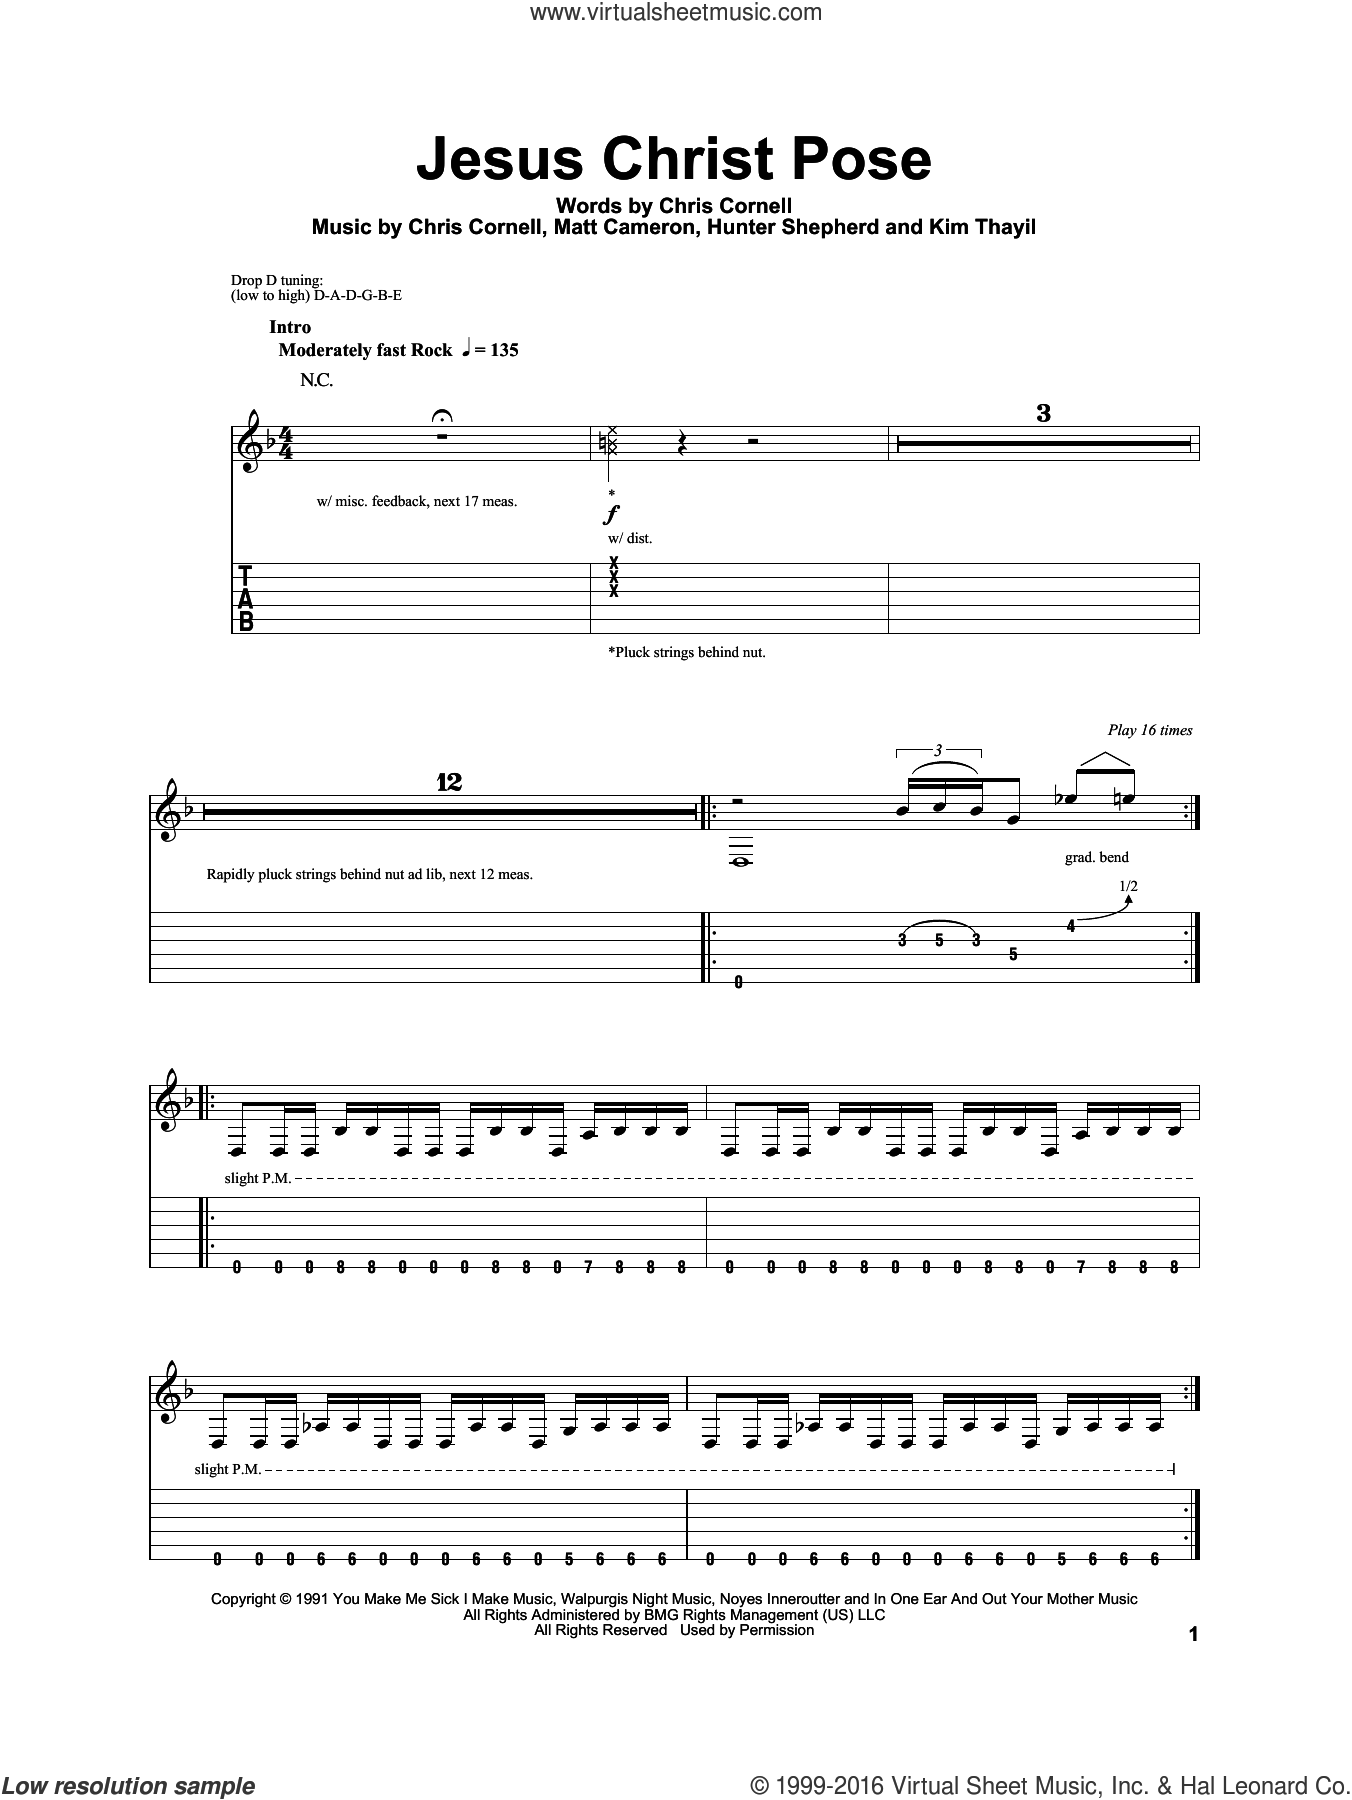 Jesus Christ Pose sheet music for guitar (tablature, play-along) by Soundgarden, Chris Cornell, Hunter Shepherd, Kim Thayil and Matt Cameron, intermediate